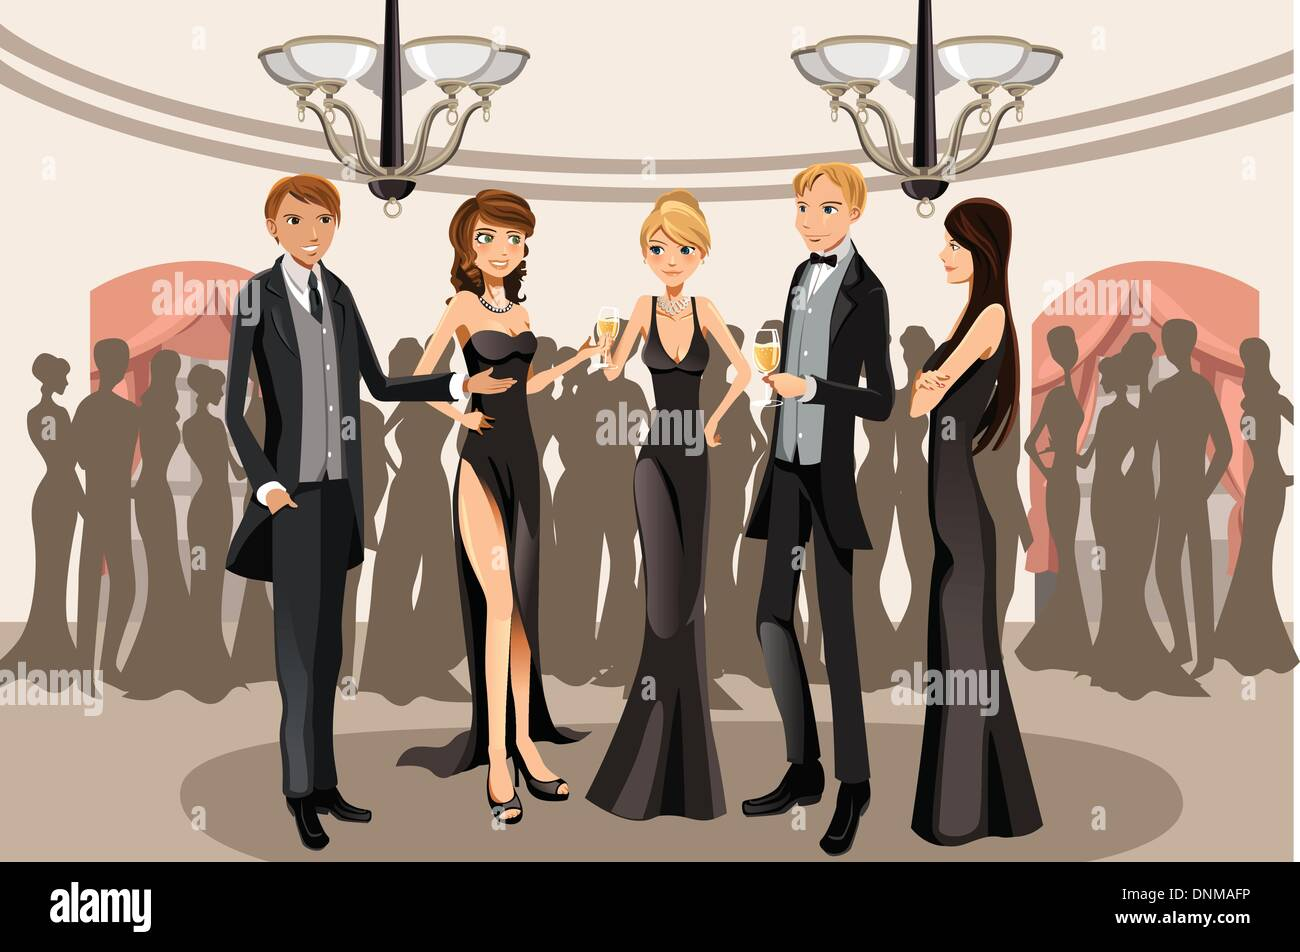 A vector illustration of people in a banquet party - Stock Vector